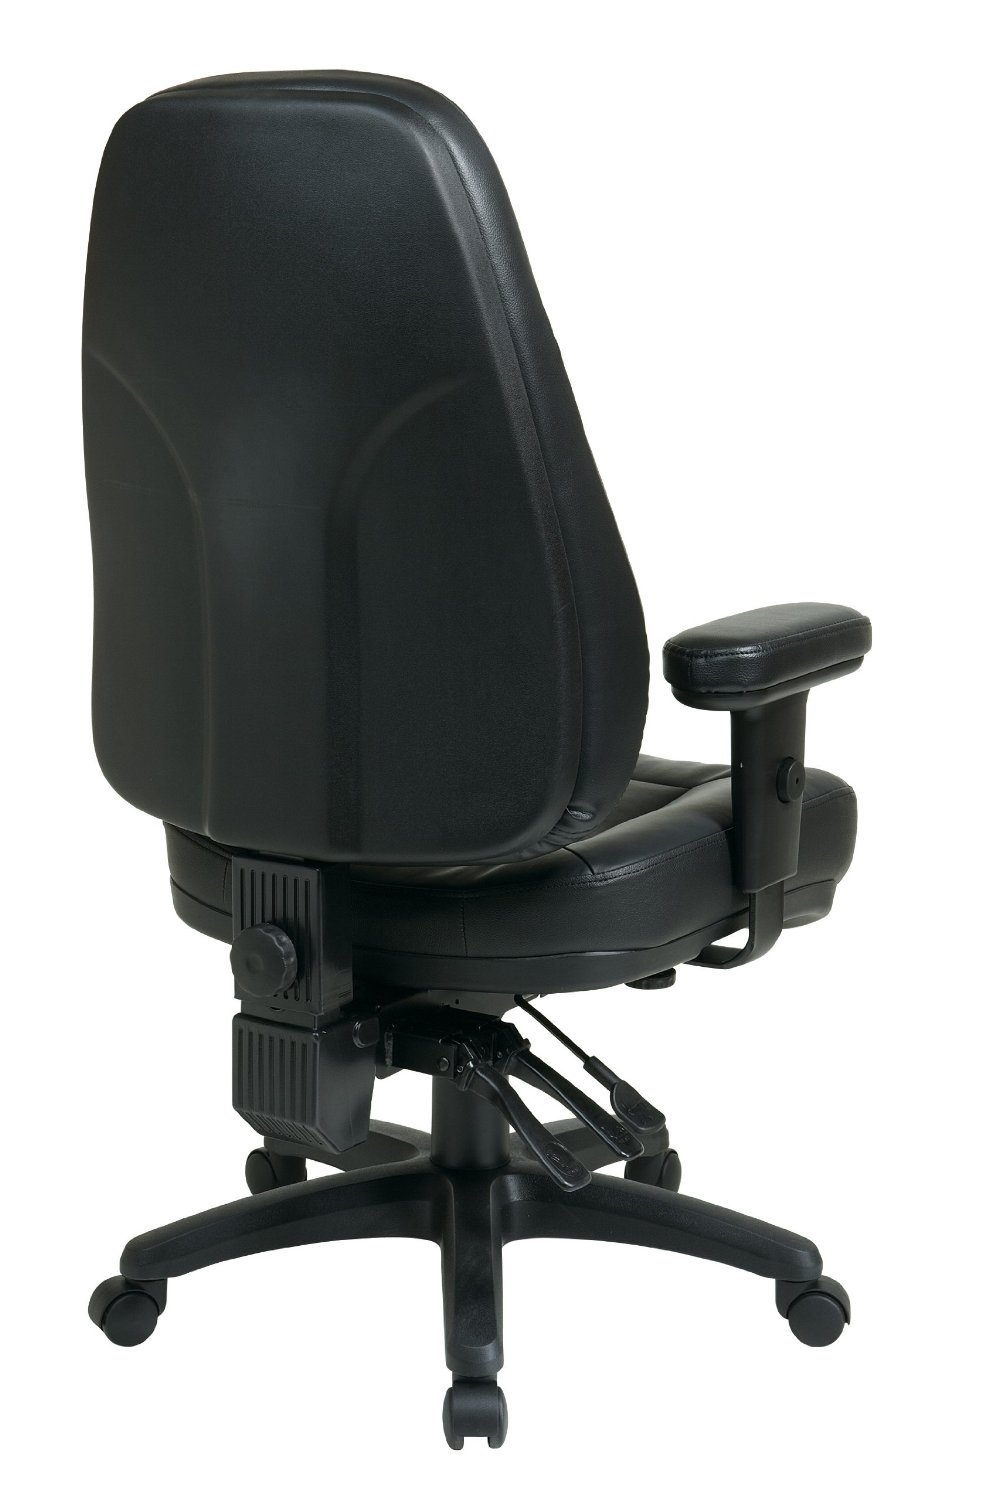 The Best Office Star Office Chair